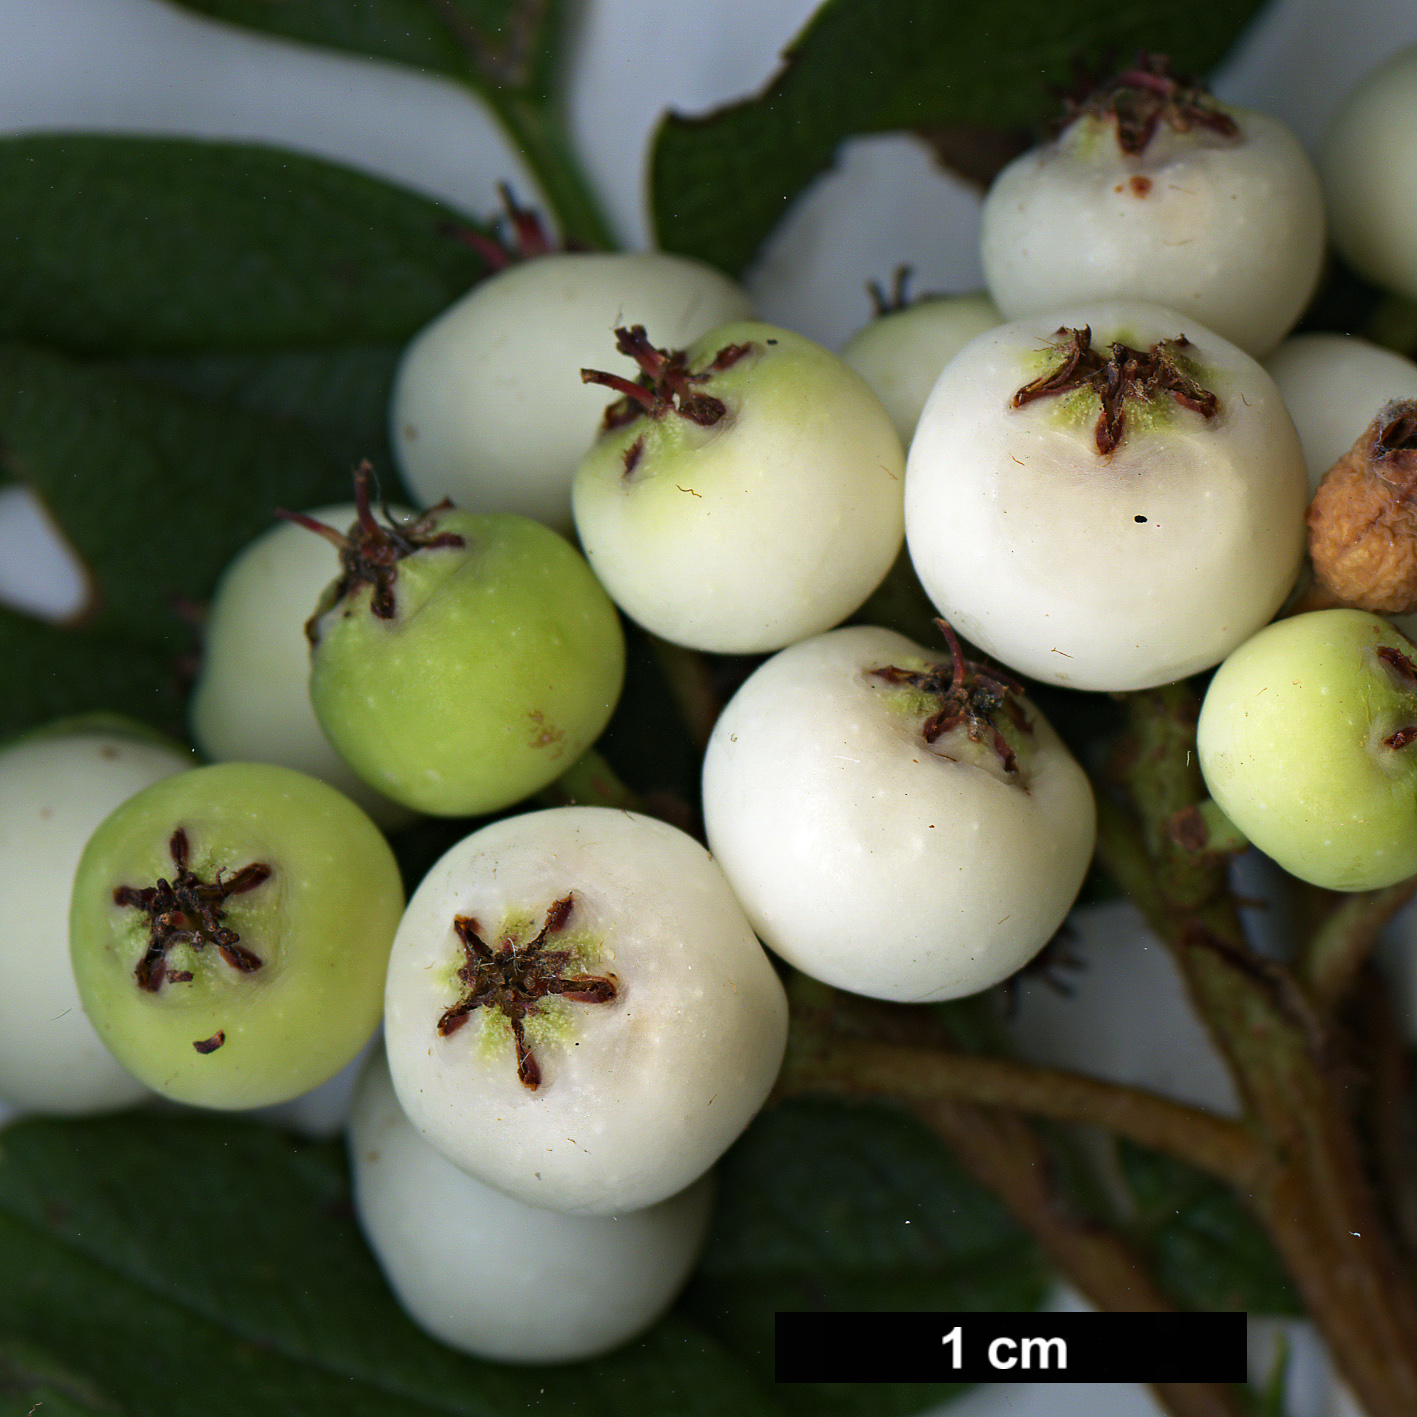 High resolution image: Family: Rosaceae - Genus: Sorbus - Taxon: KR 5008 (S. aff. kiukiangensis)